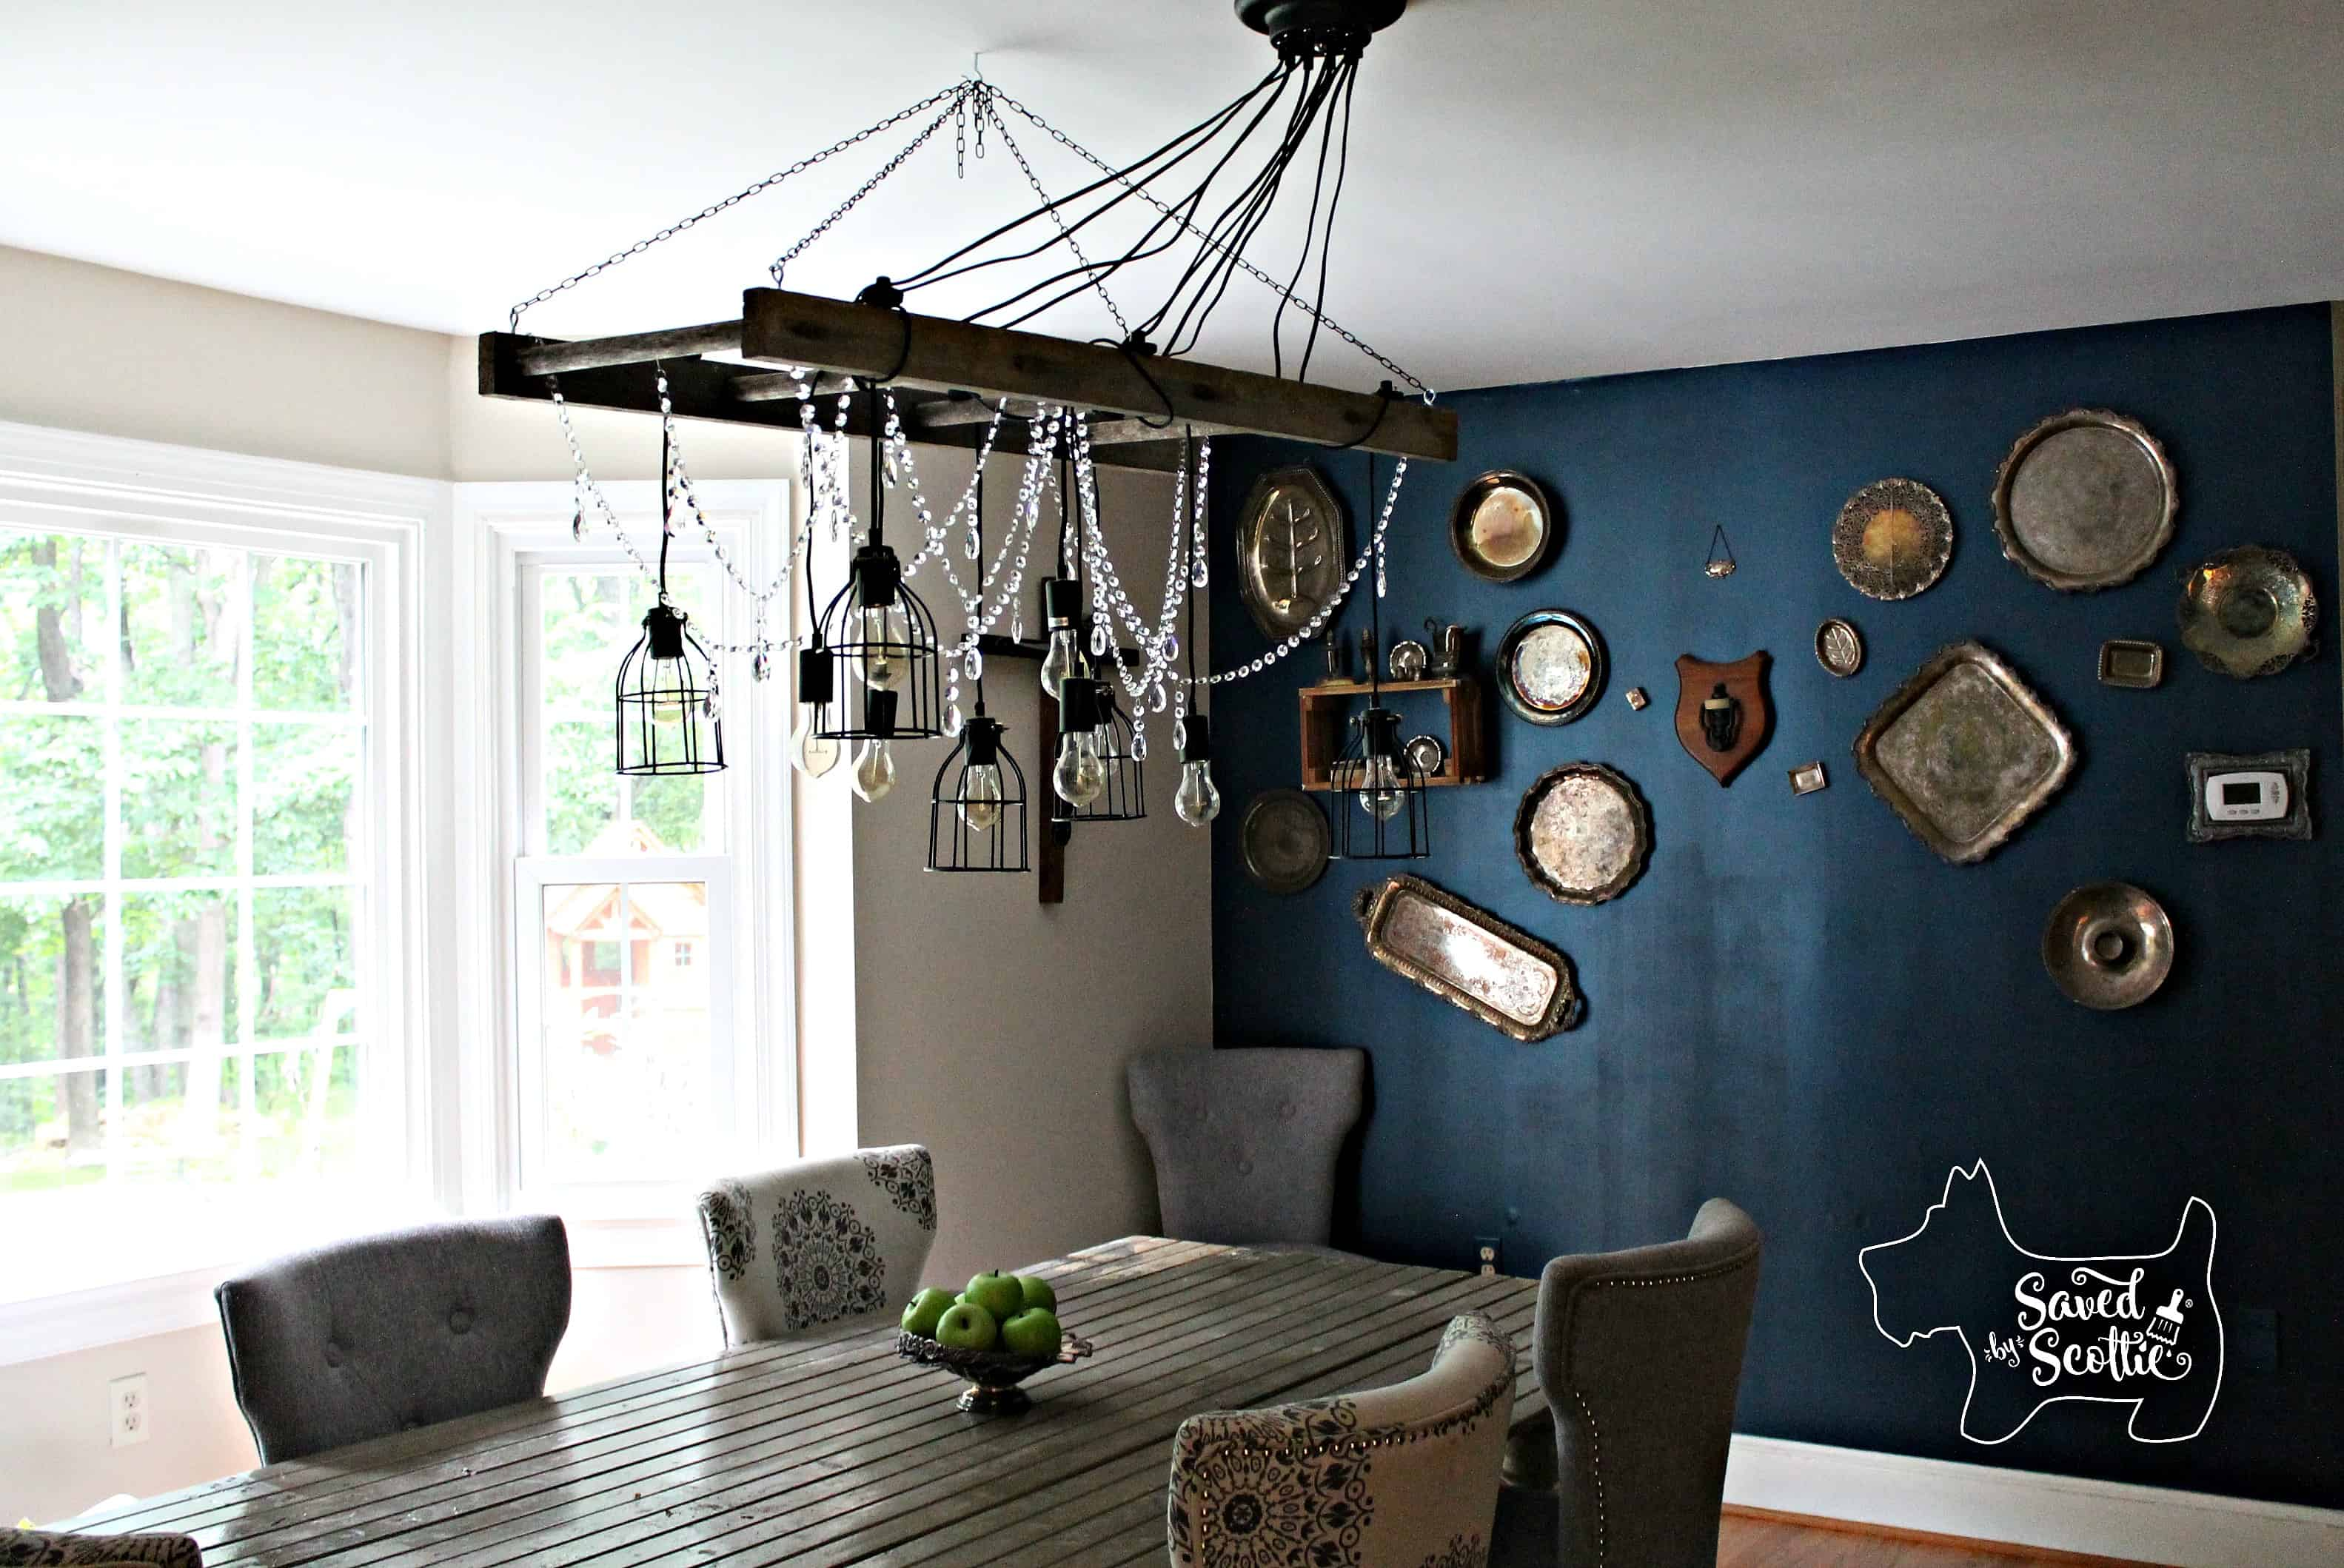 Saved by Scottie rustic chandelier after long view off